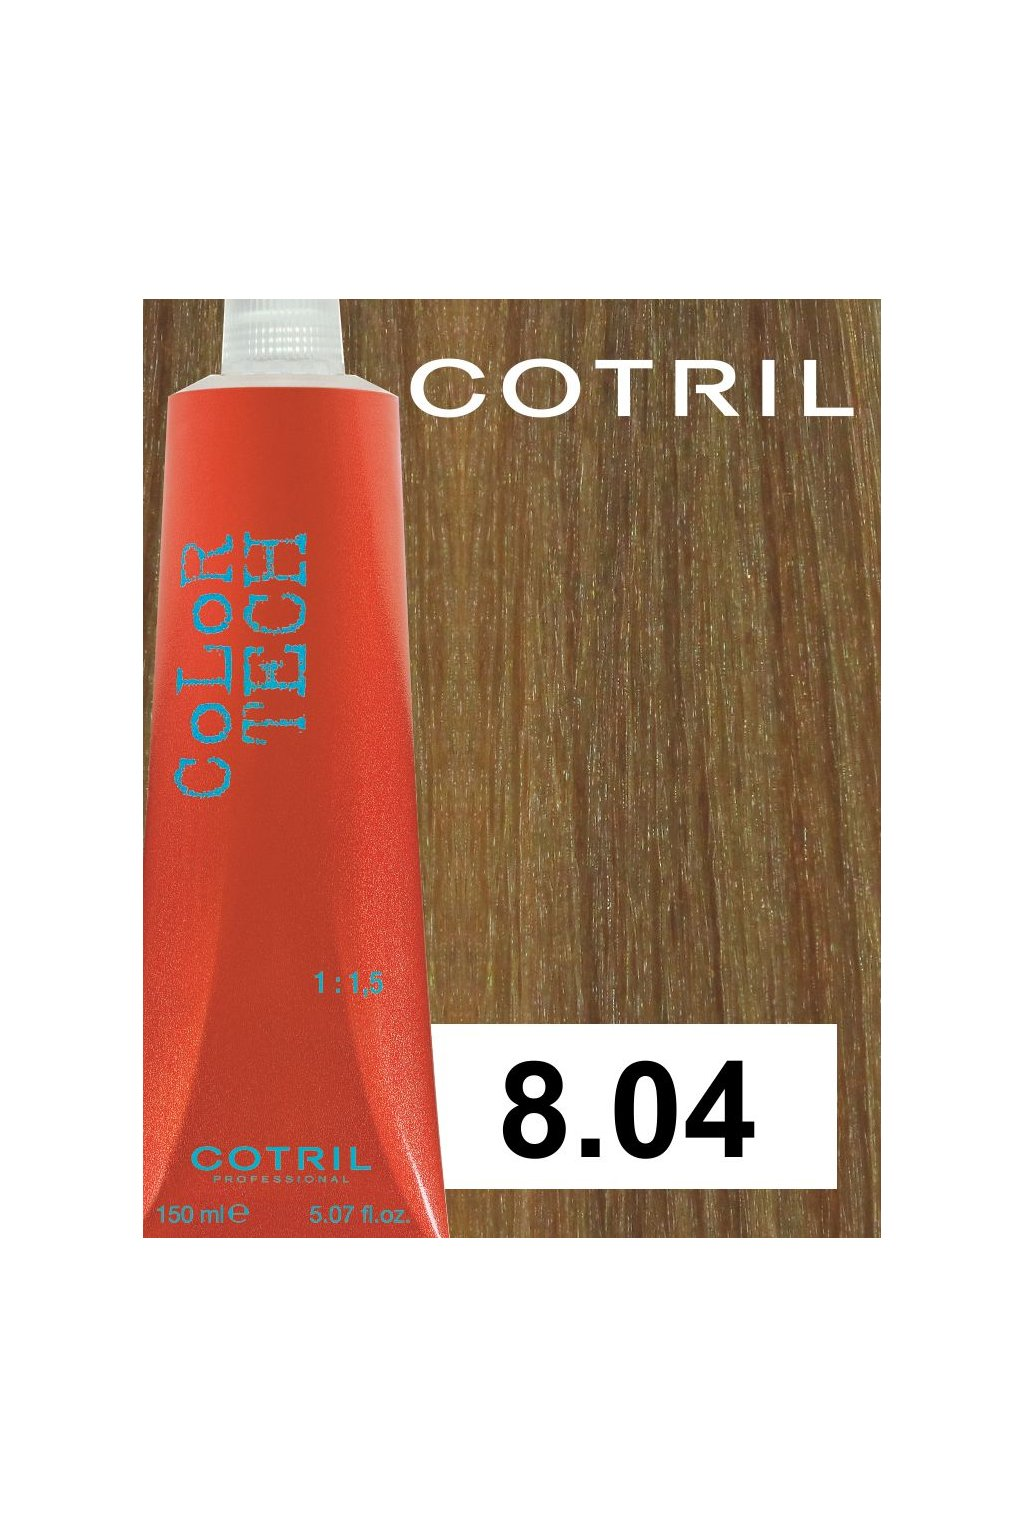 8 04 ct cotril